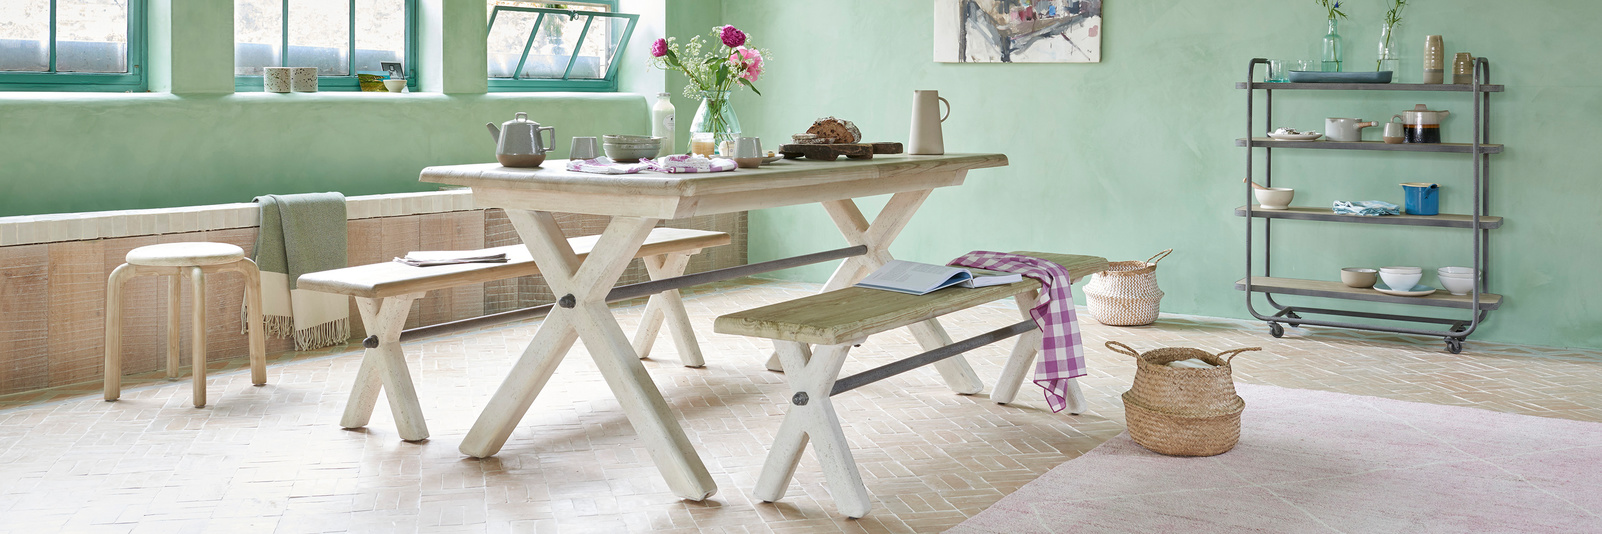 Feast Wooden Farmhouse Kitchen Table